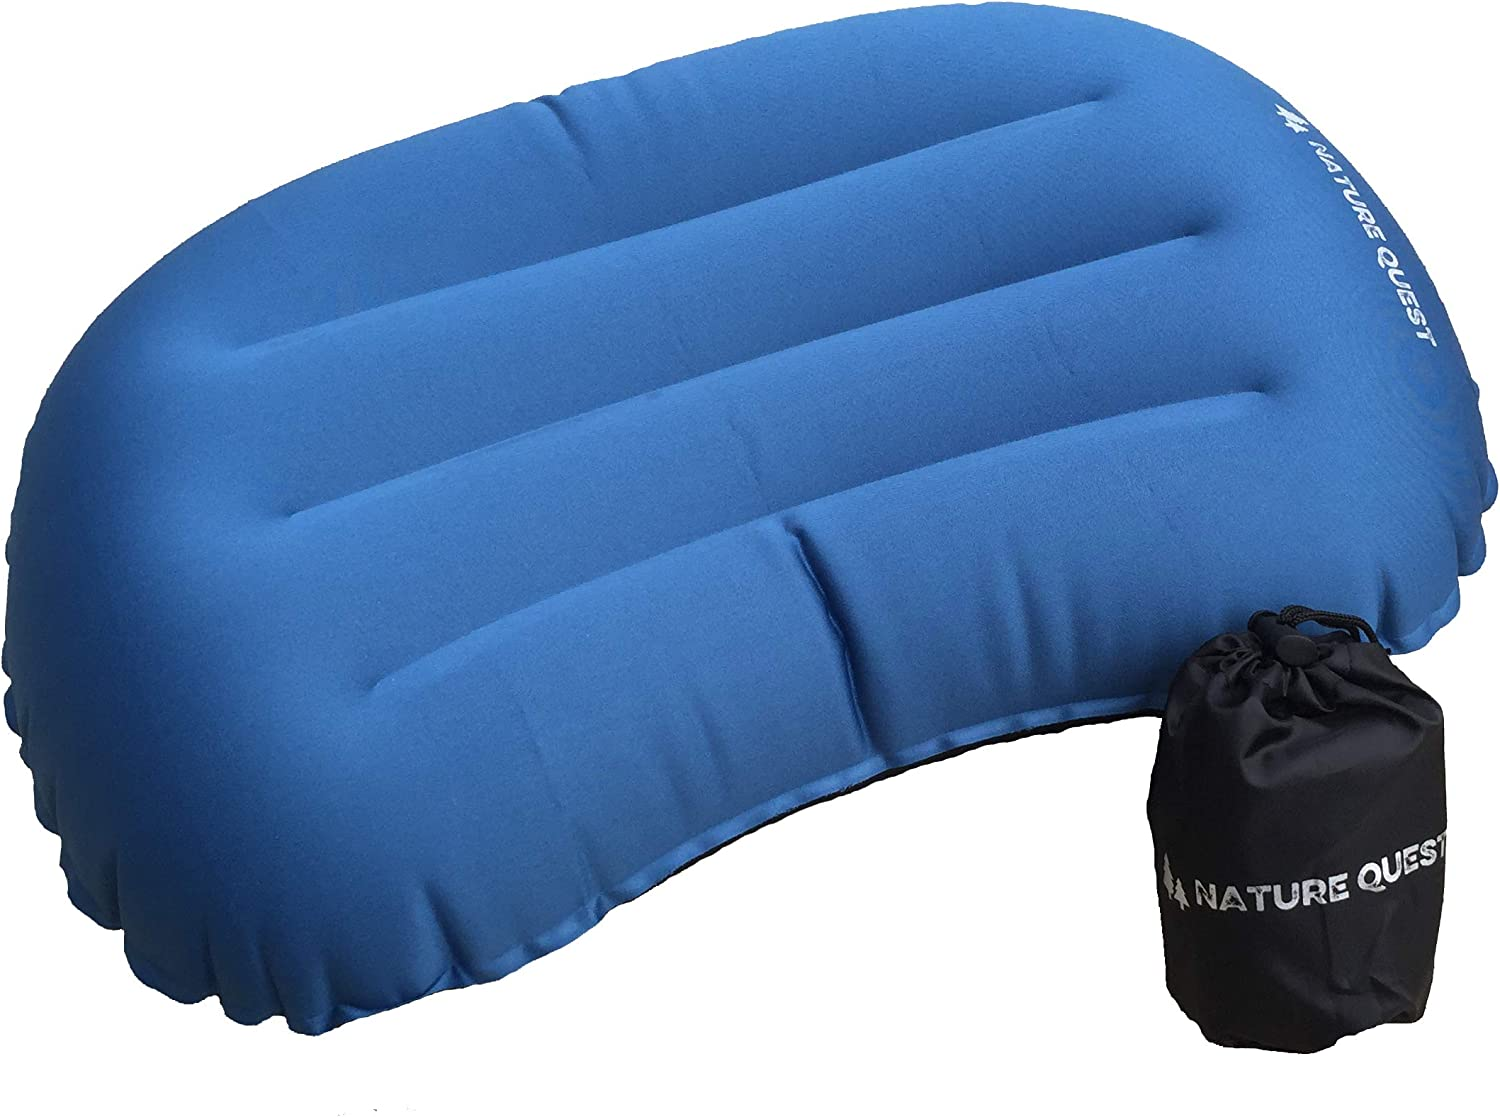 Compressible and Sleeping Compact Hiking Nature Quest Inflatable Camping Pillow Comfortable Ergonomic Design; Portable Air Pillow for Backpacking Ultra-Light